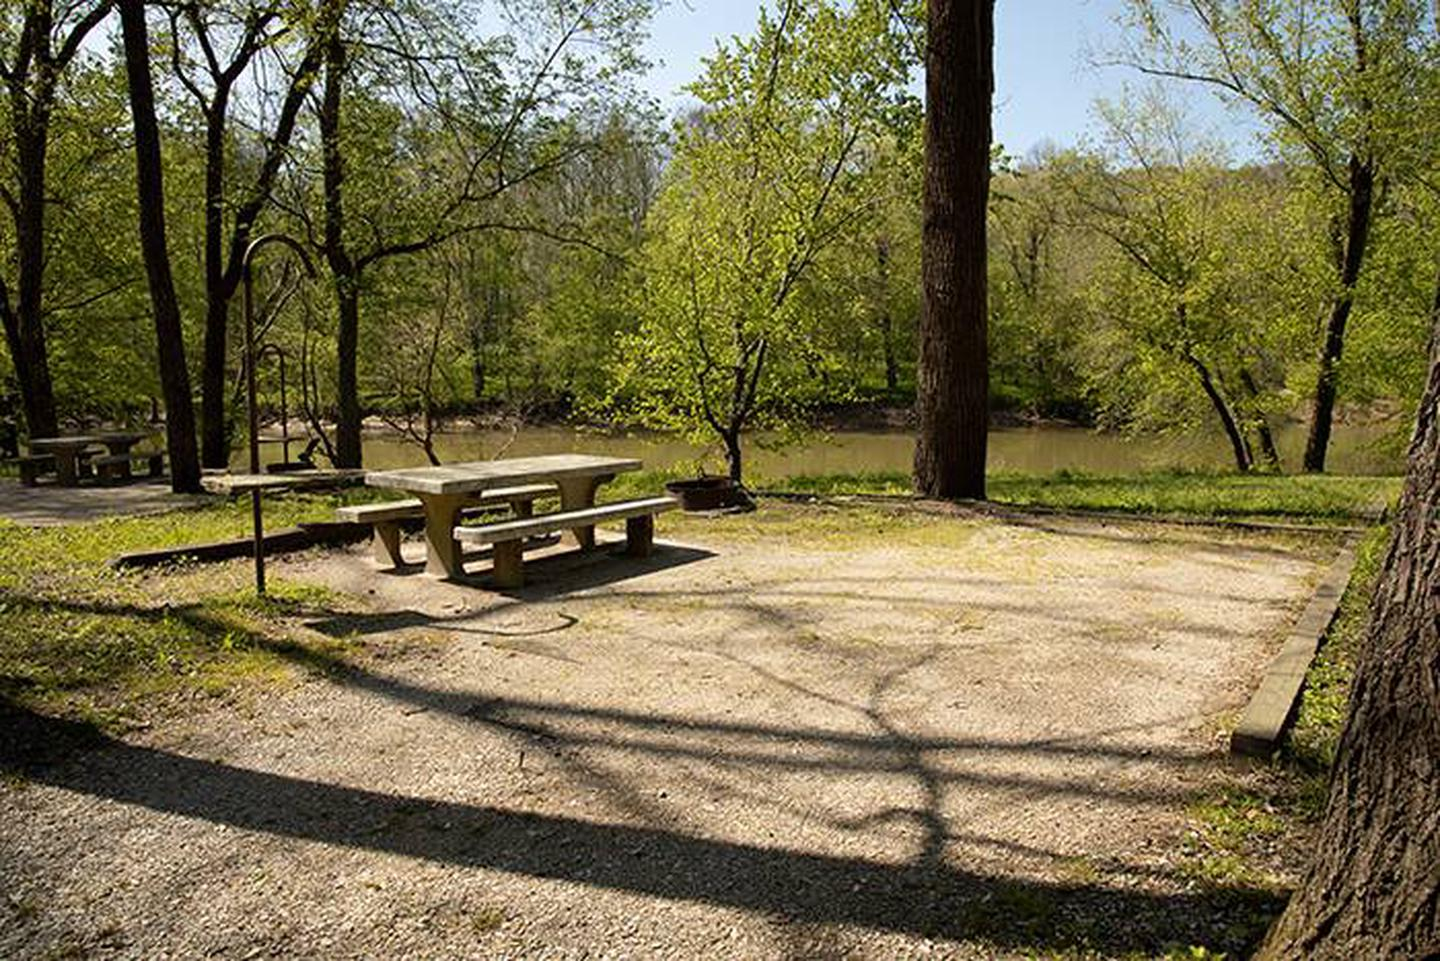 Campsite 6, has a view of the Green River, the campsite has a picnic table and fire ring.